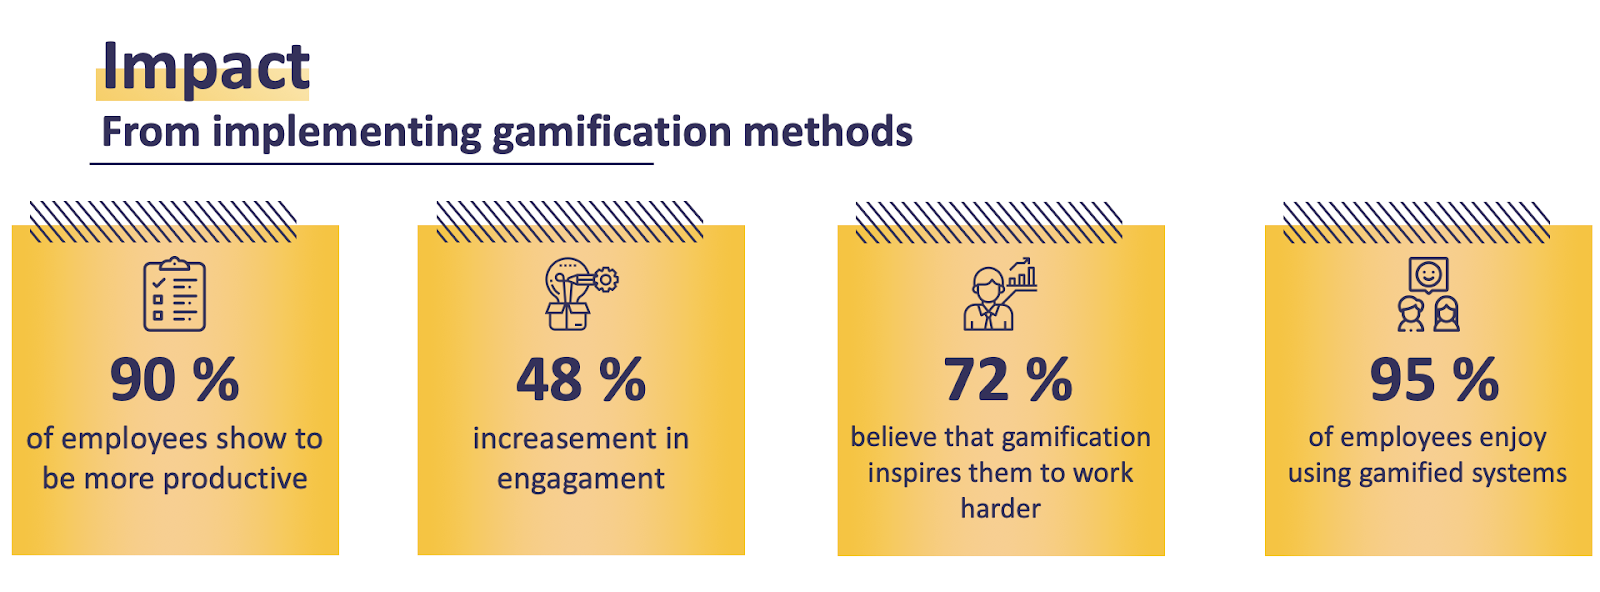 impact from gamification